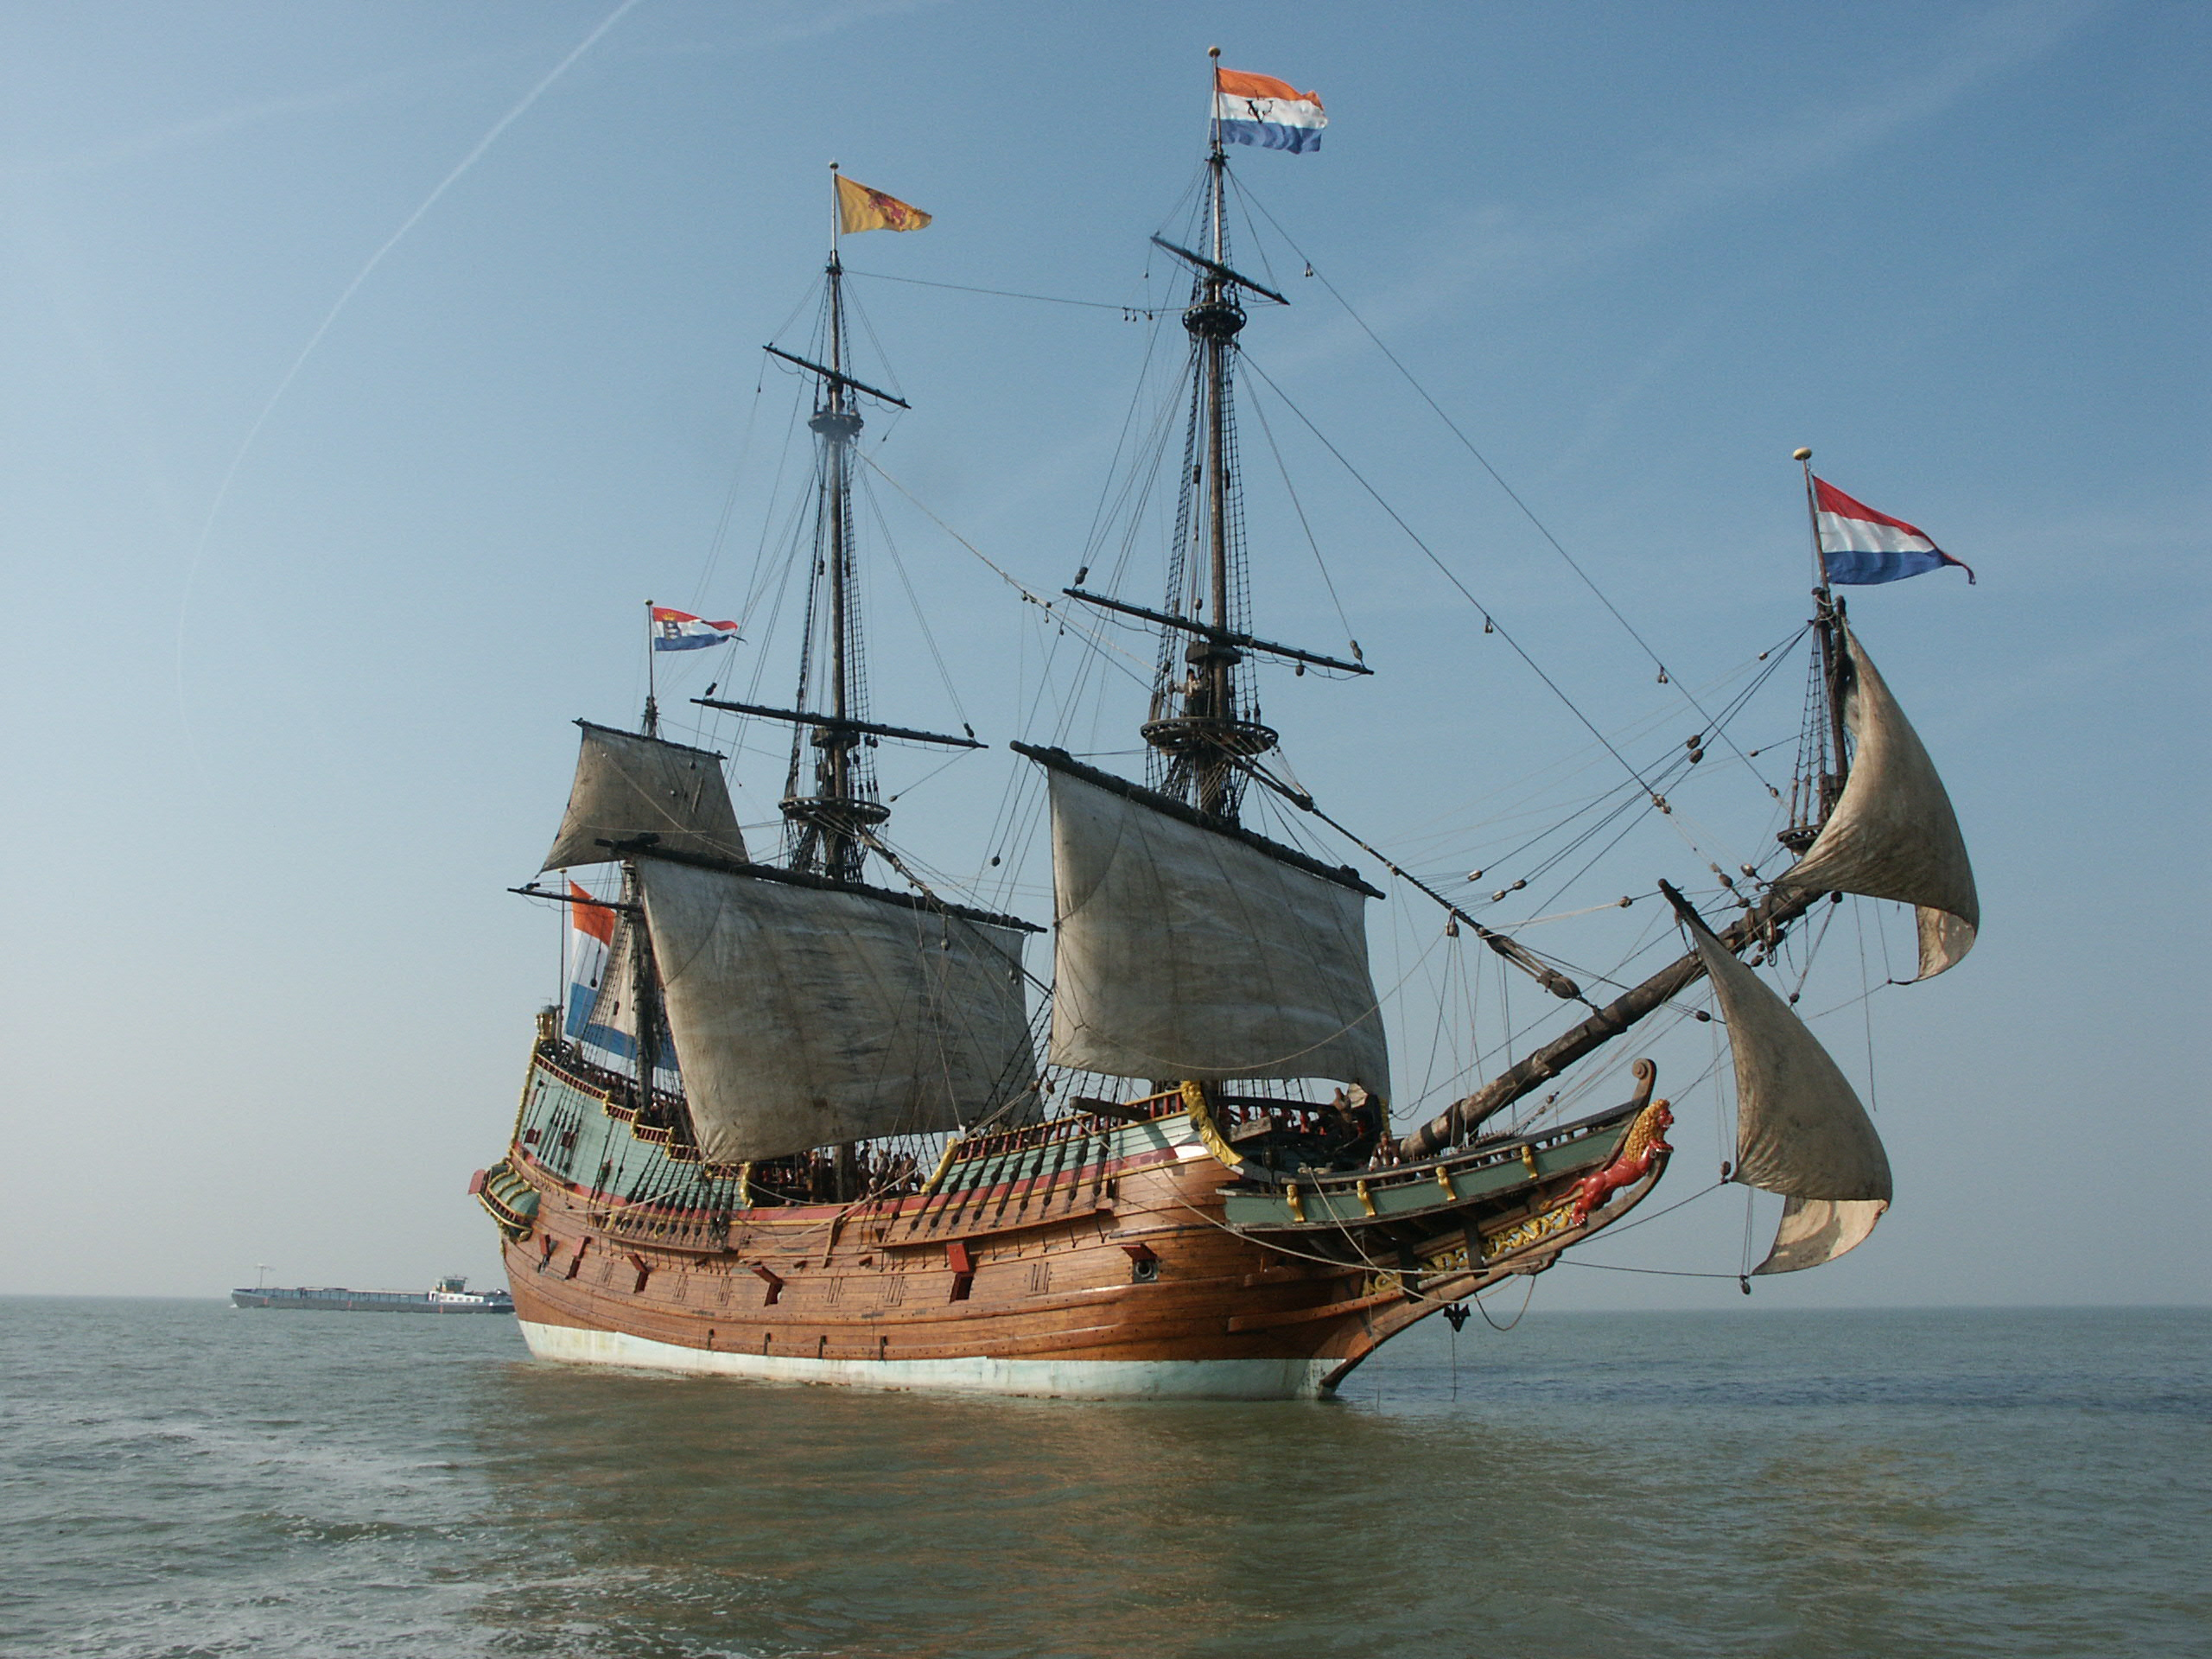 East india company incl pirate